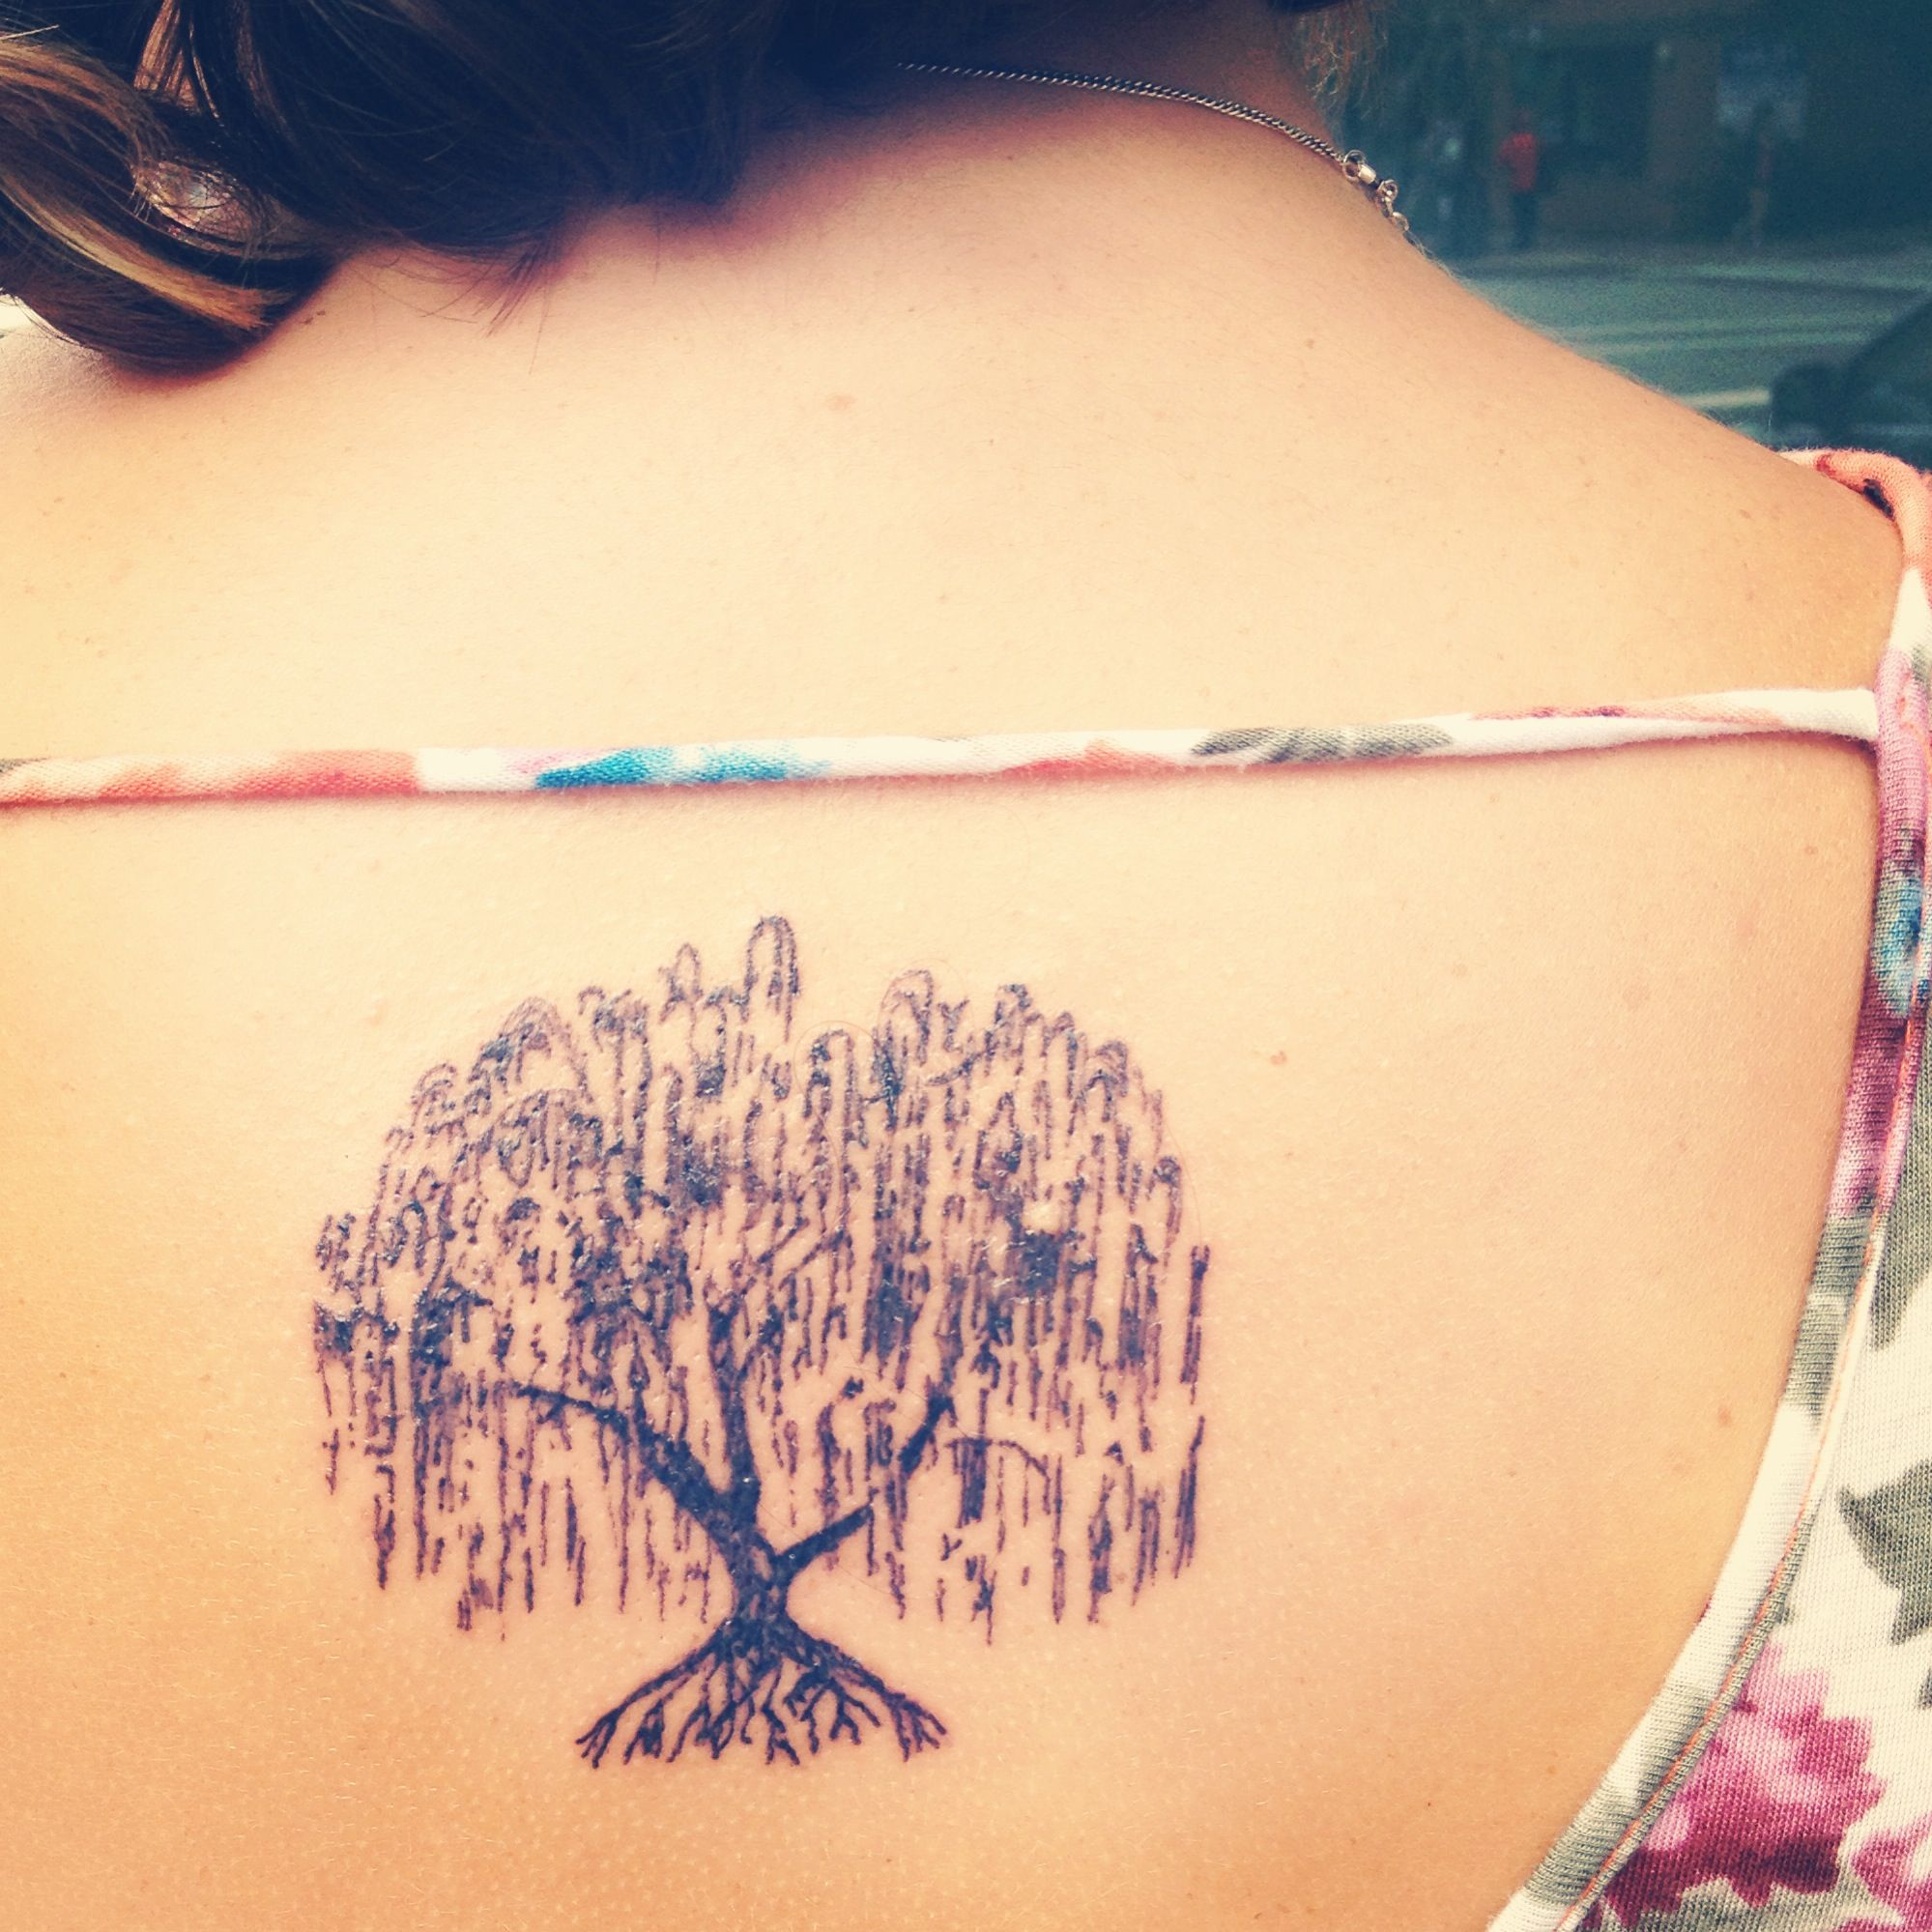 Uncategorized/virgo tattoos designs and ideas find your tattoo/virgo tattoos designs and ideas find your tattoo 27 - New Weeping Willow Tree Tattoo Love The Sketch Style Tattoo This Piece Was Done By Michelle Joy At Gypsy Tattoo Parlor In Pittsburgh Pa Find